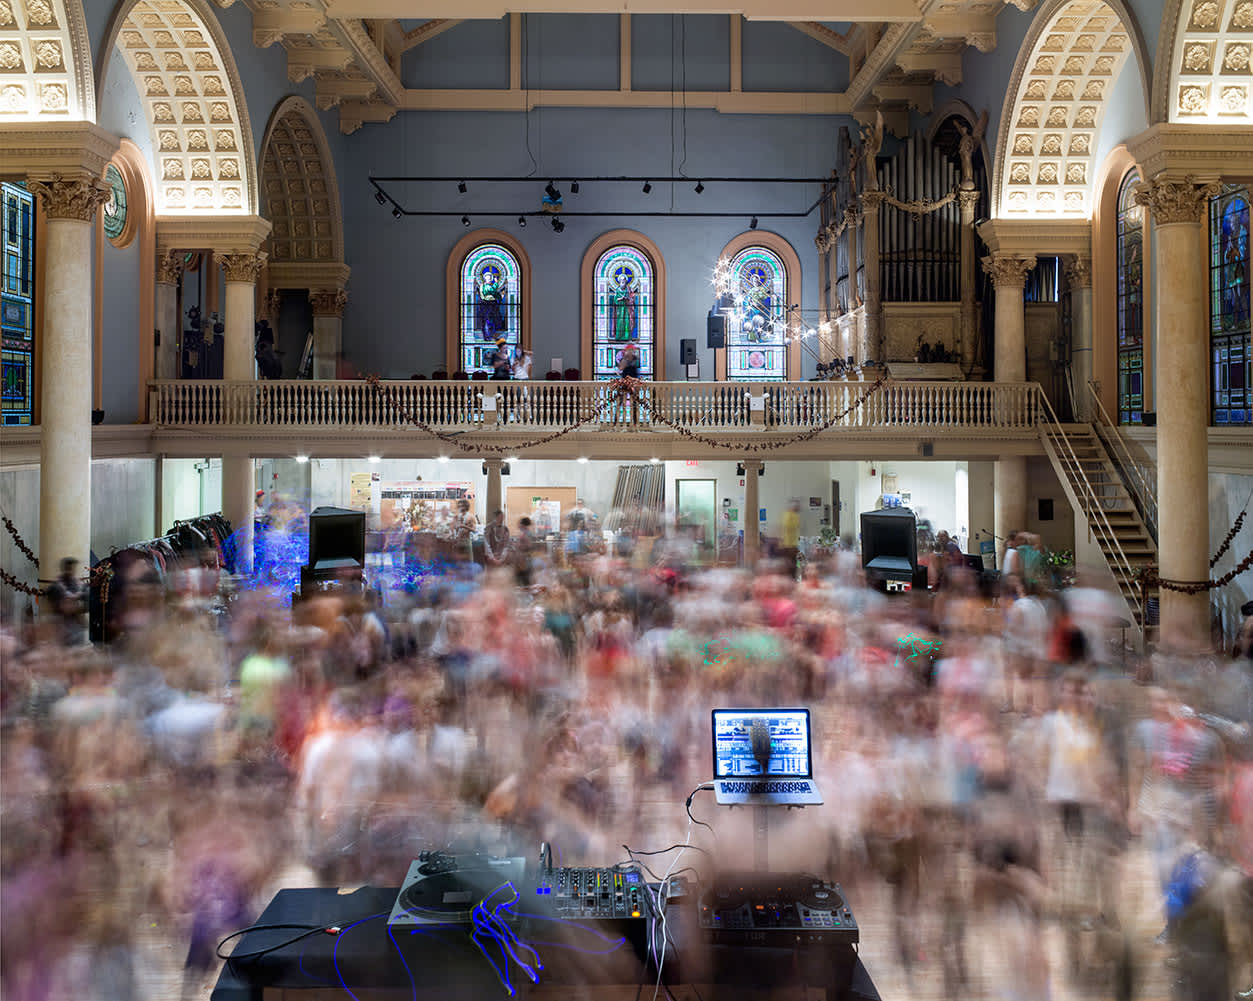 Morning Rave, Judson Memorial Church, 2014